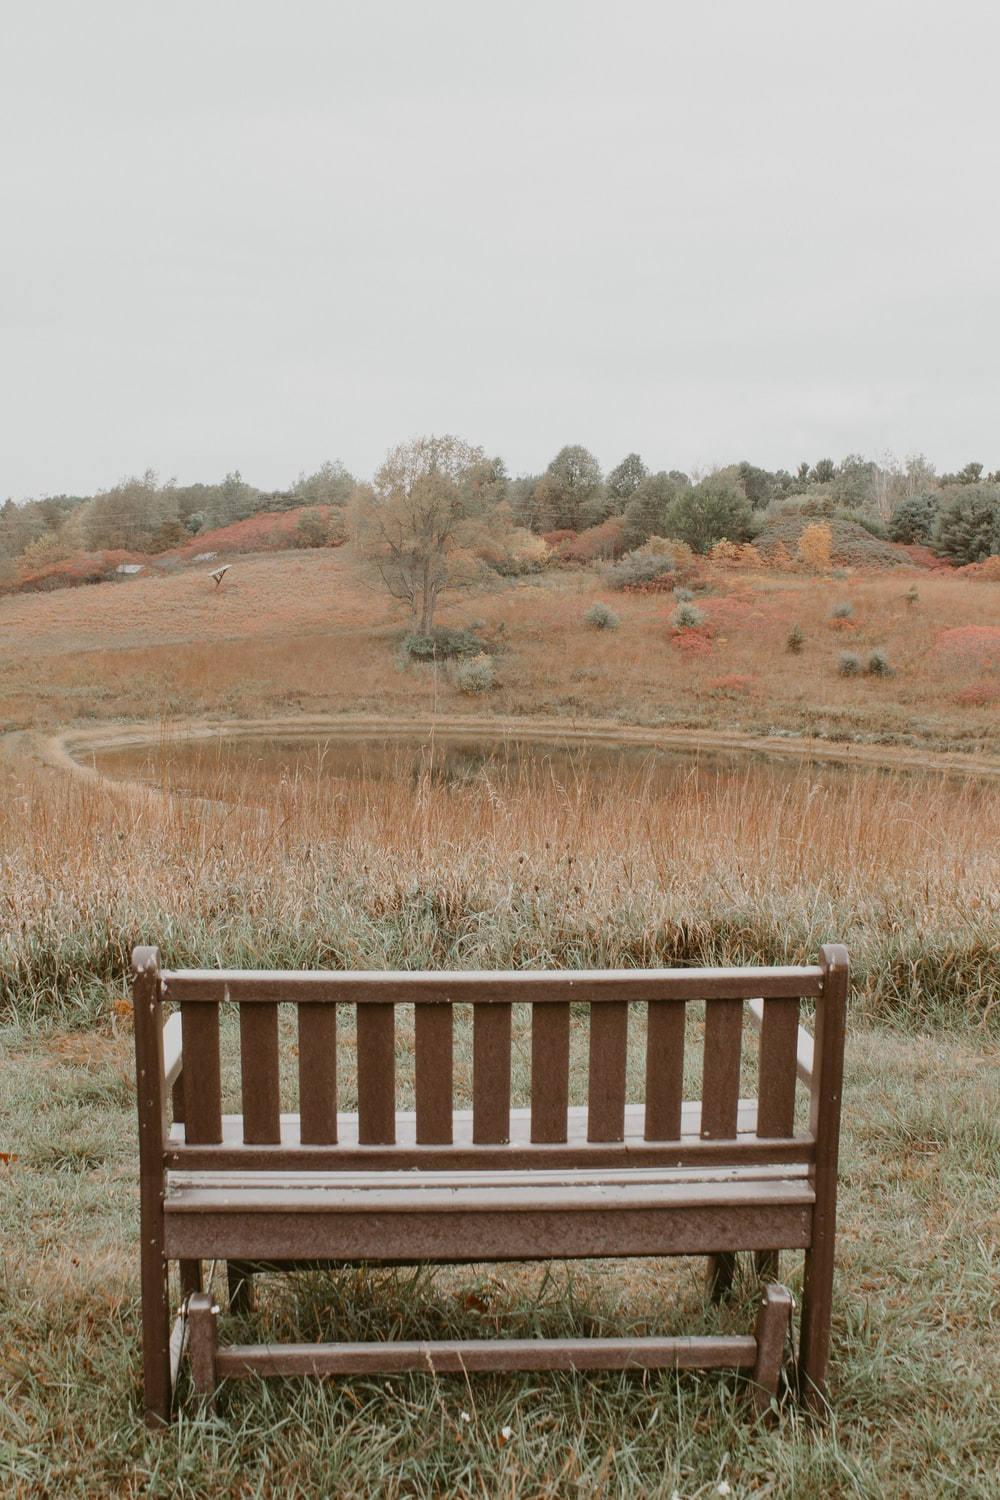 brown wooden bench on brown field during daytime